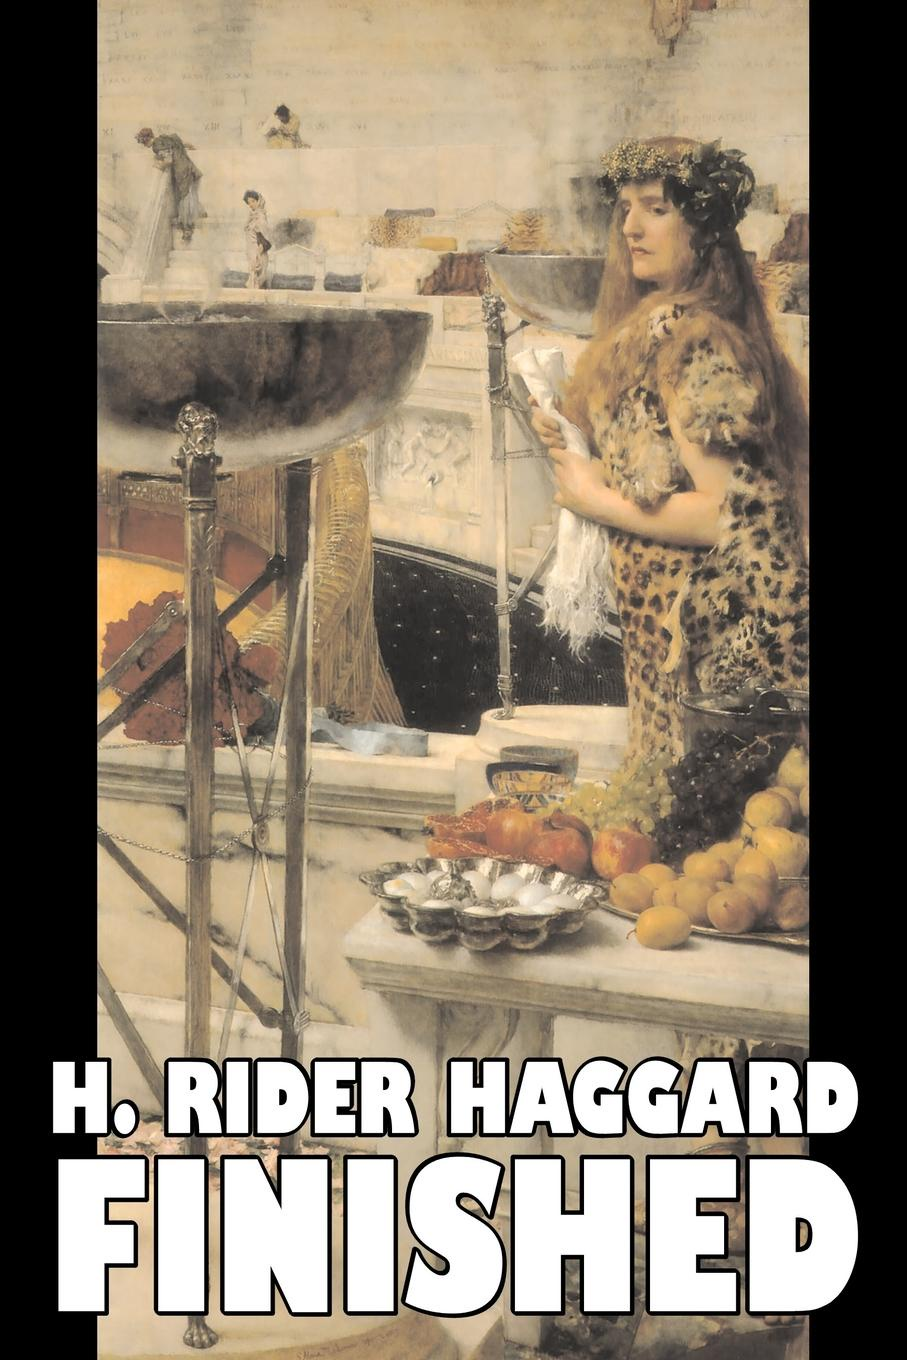 цена H. Rider Haggard Finished by H. Rider Haggard, Fiction, Fantasy, Historical, Action & Adventure, Fairy Tales, Folk Tales, Legends & Mythology онлайн в 2017 году